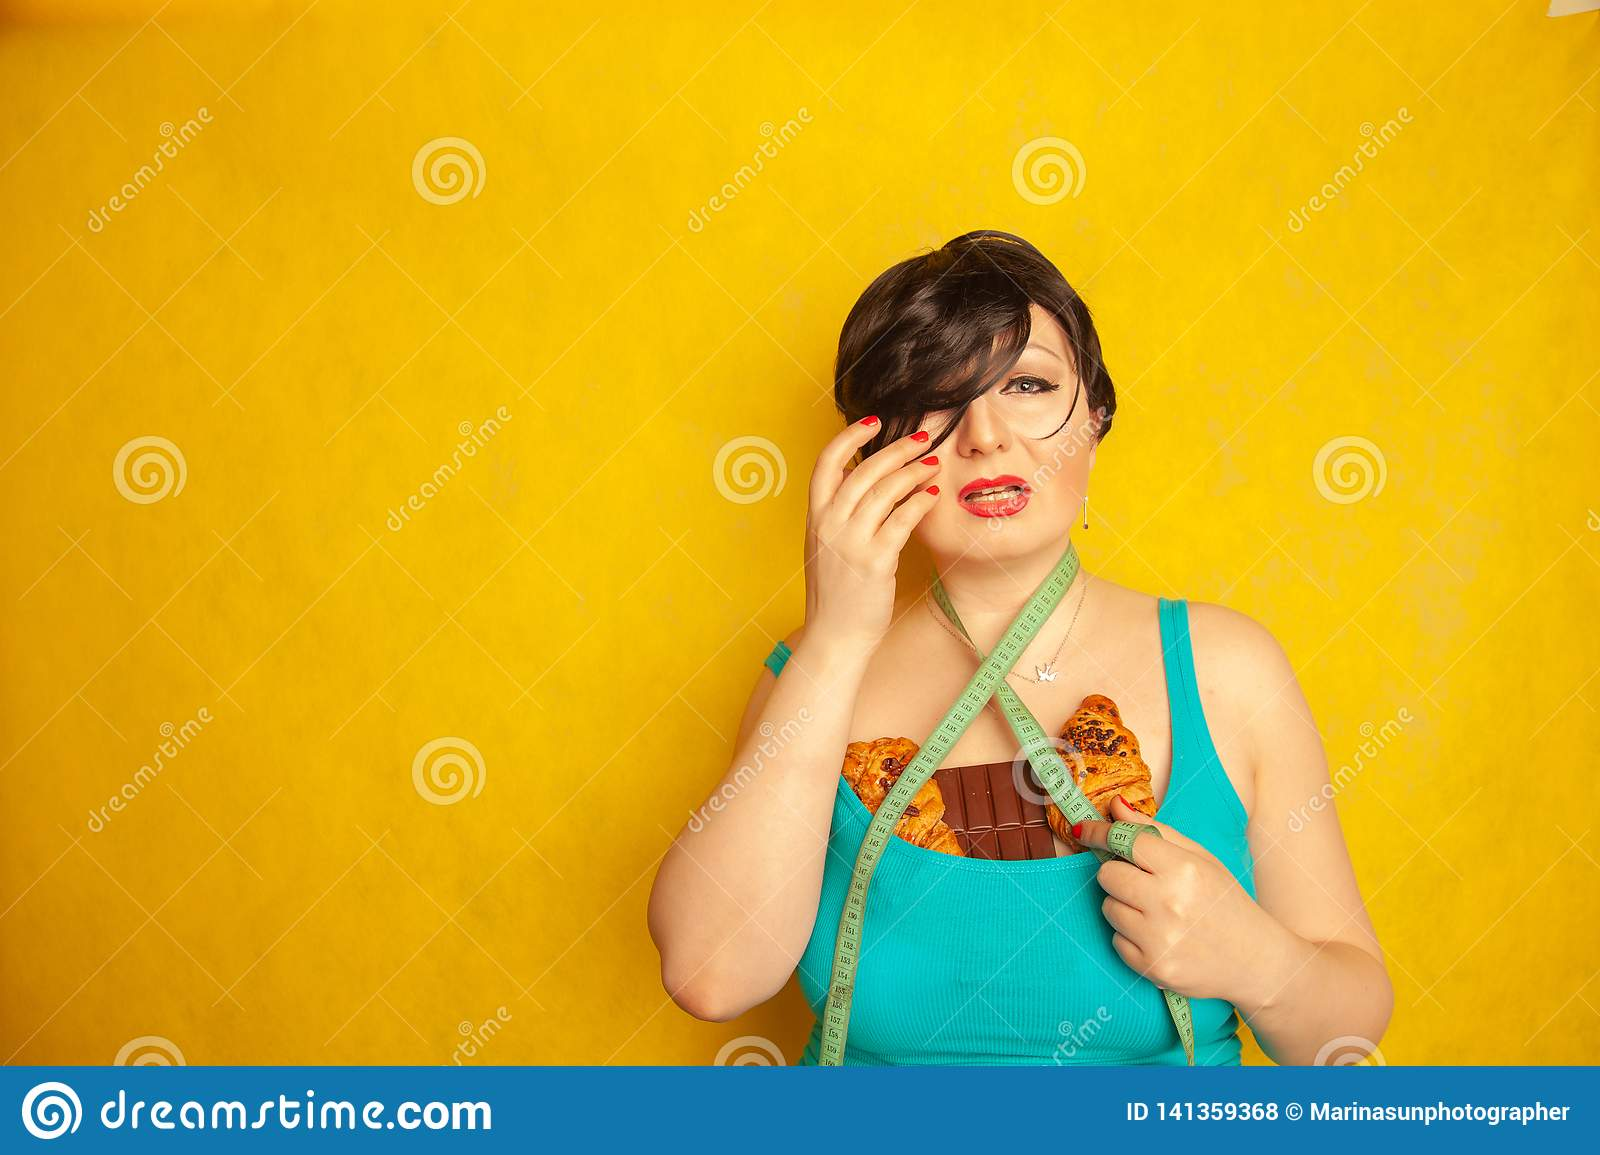 Chubby girl unhappy with fashion standarts and sad with a centimeter tape and high-calorie food, she is crying